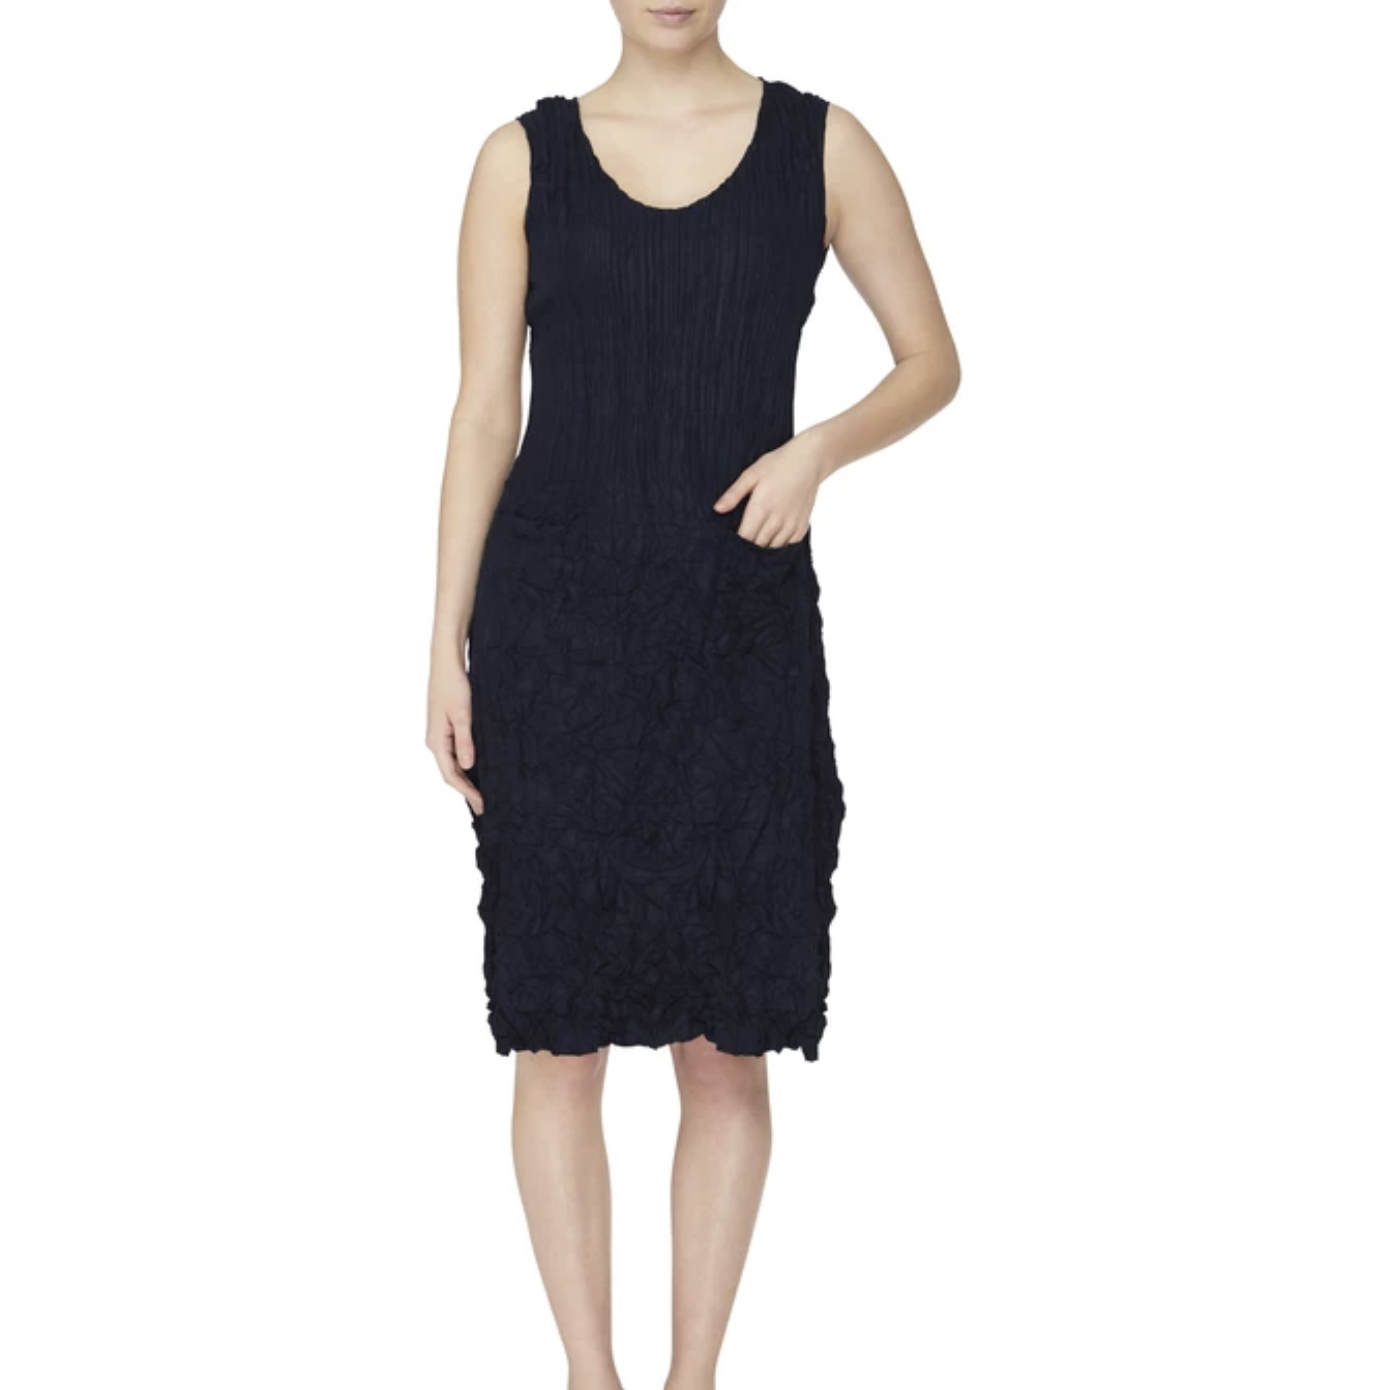 Alquema Sleeveless New Pocket Dress in French Navy